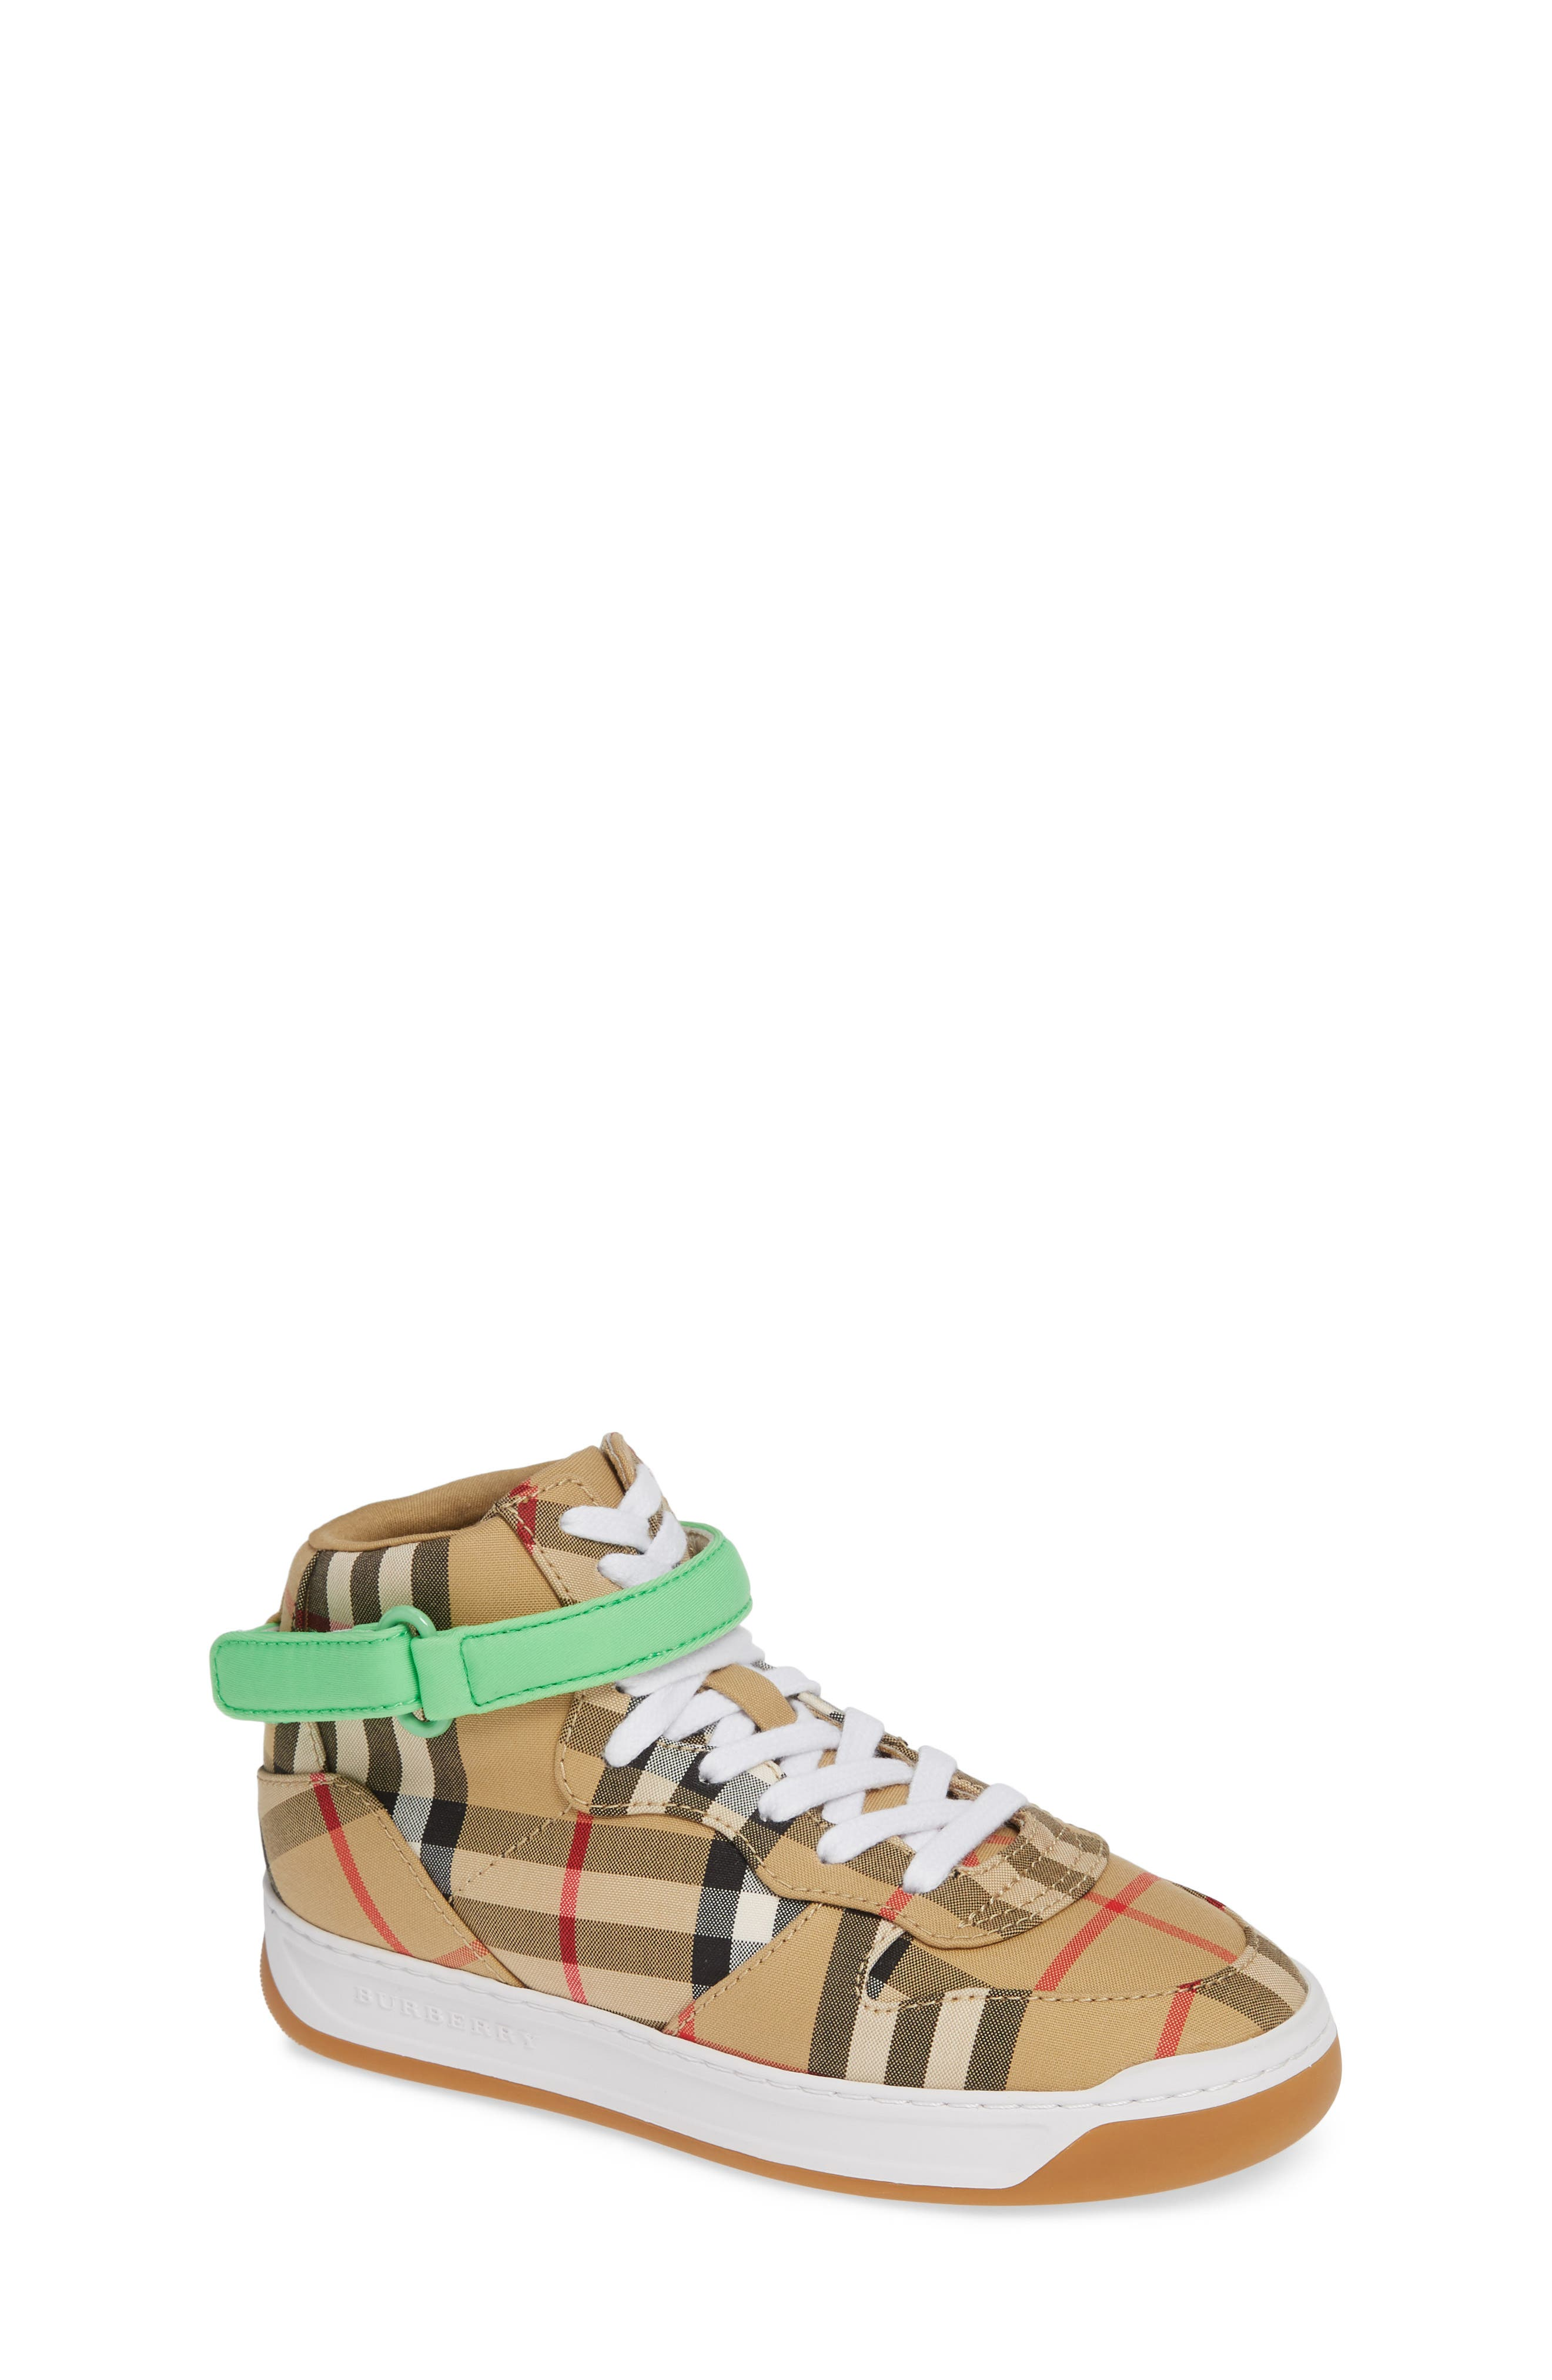 BURBERRY, Groves High Top Sneaker, Main thumbnail 1, color, NEON GREEN